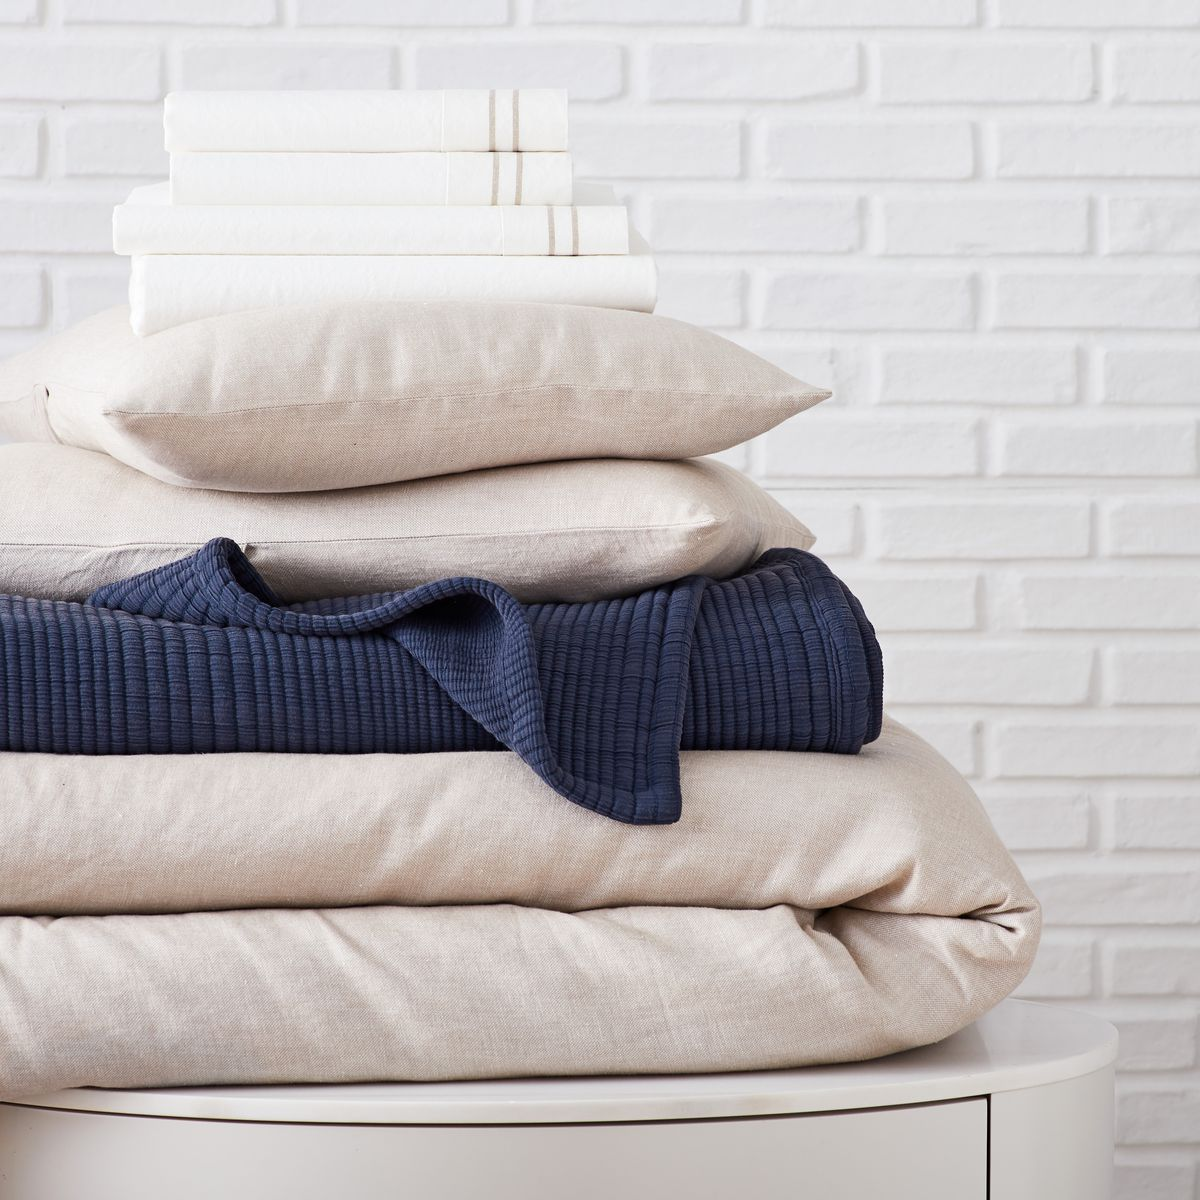 Stack of bedding in neutrals and blues.